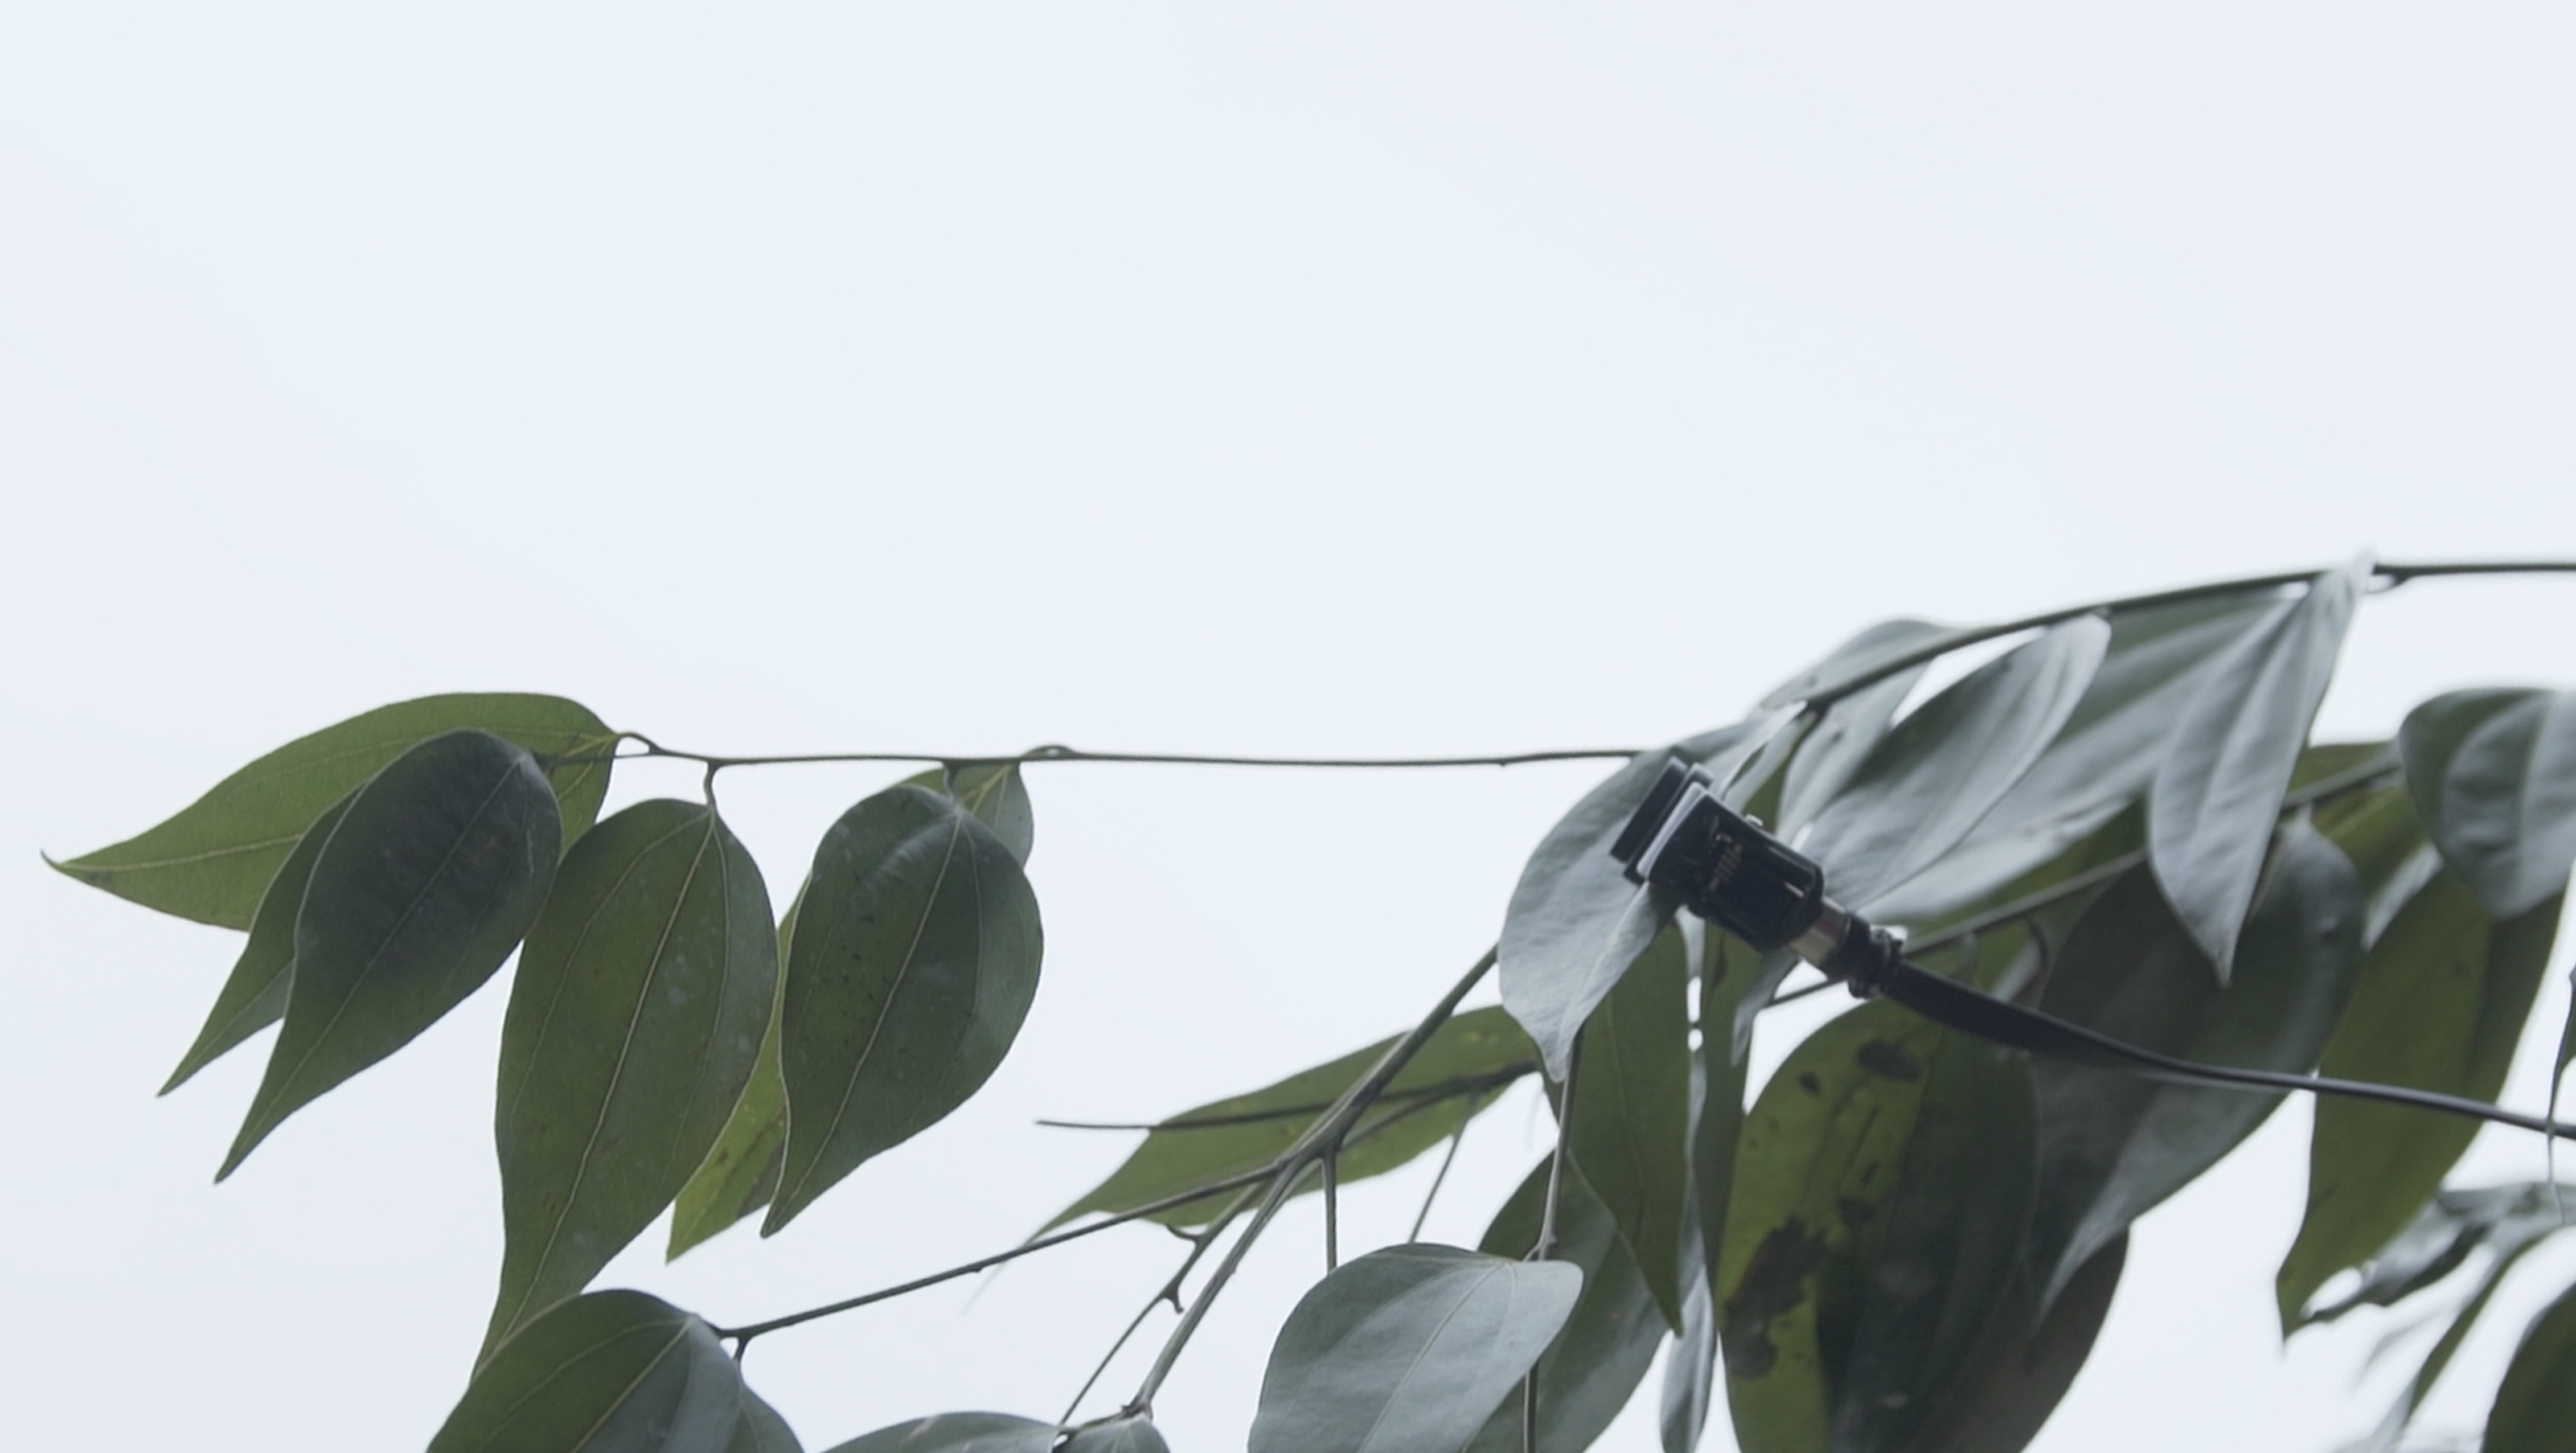 Sensor attached to the tree